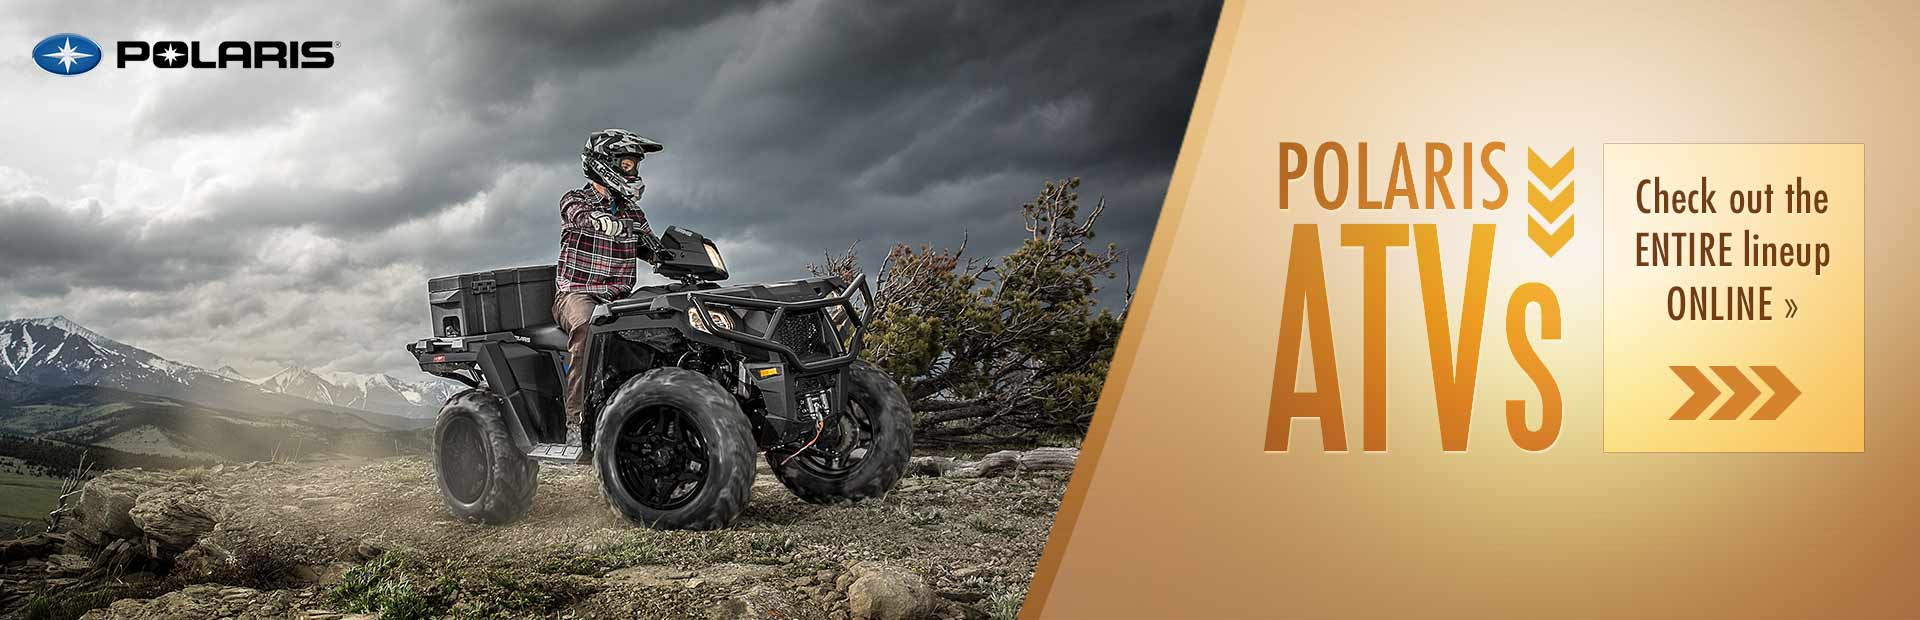 Polaris ATVs: Click here to check out the entire lineup online.